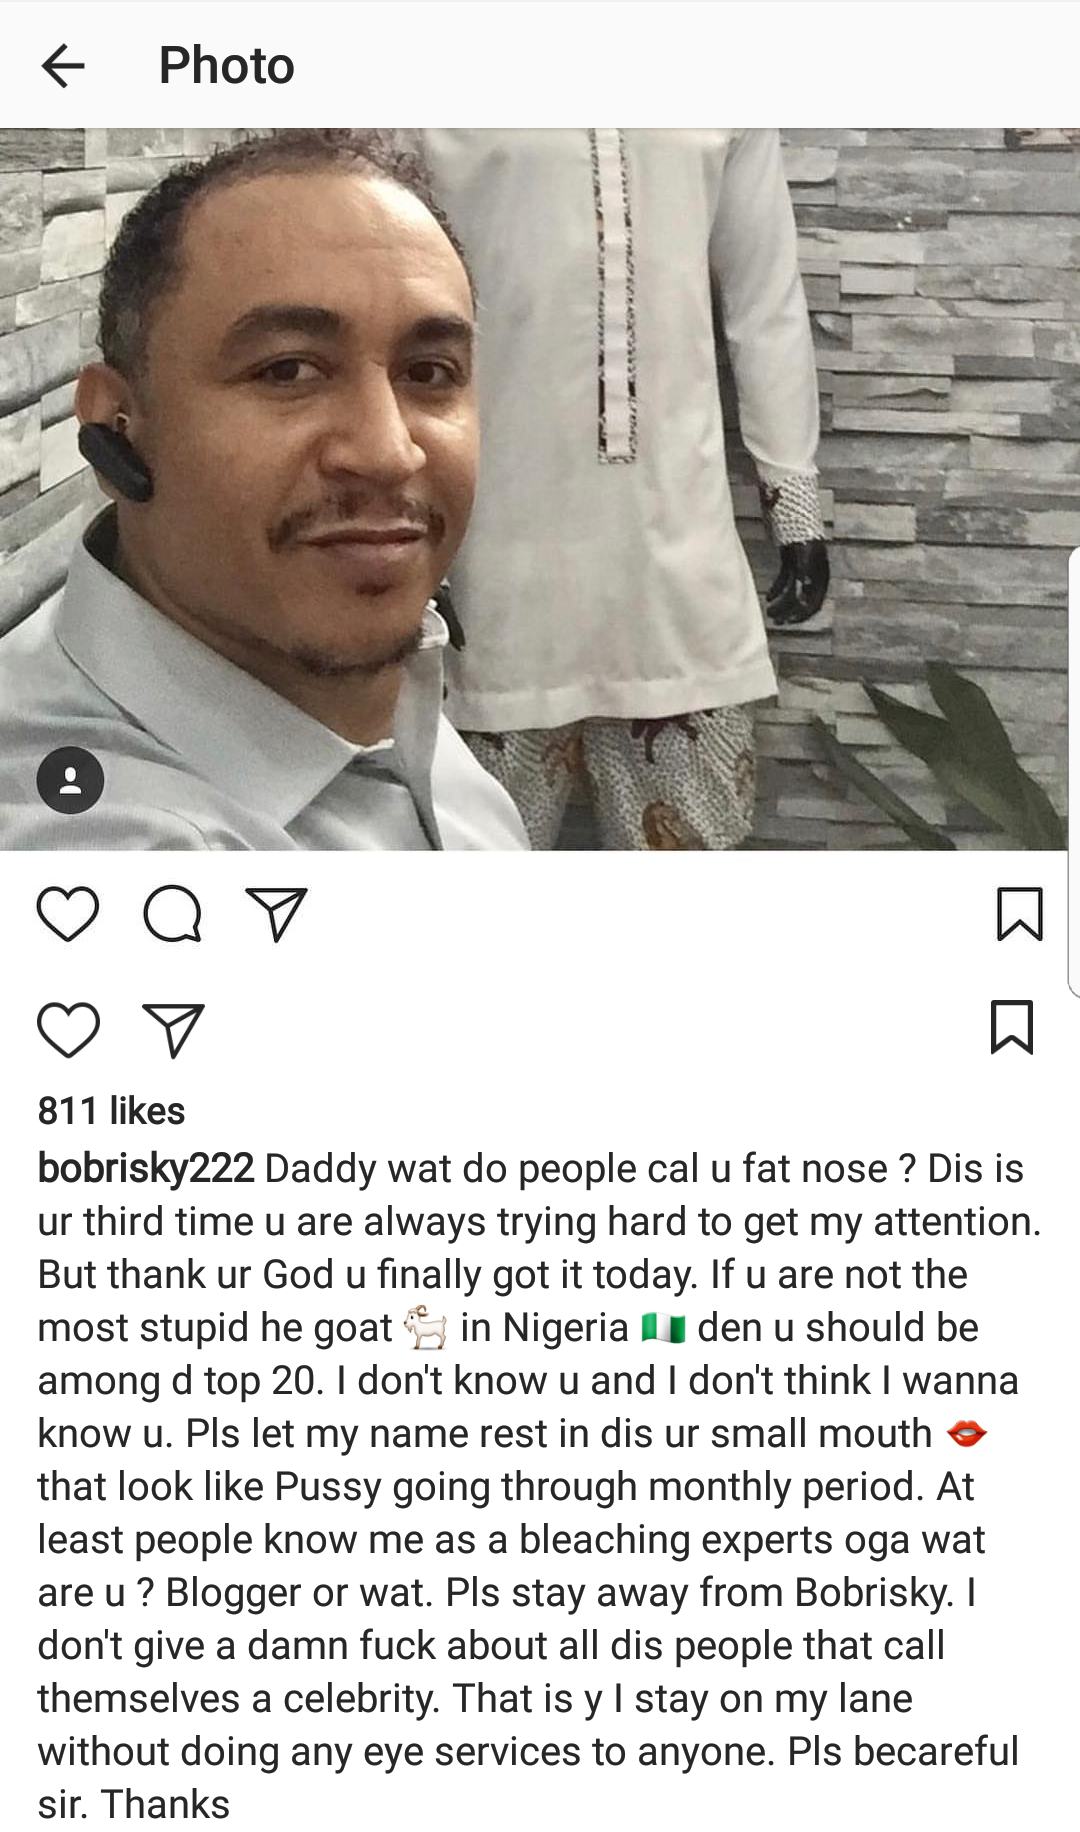 Bobrisky blasts OAP Freeze on Instagram, calls him a stupid he-goat